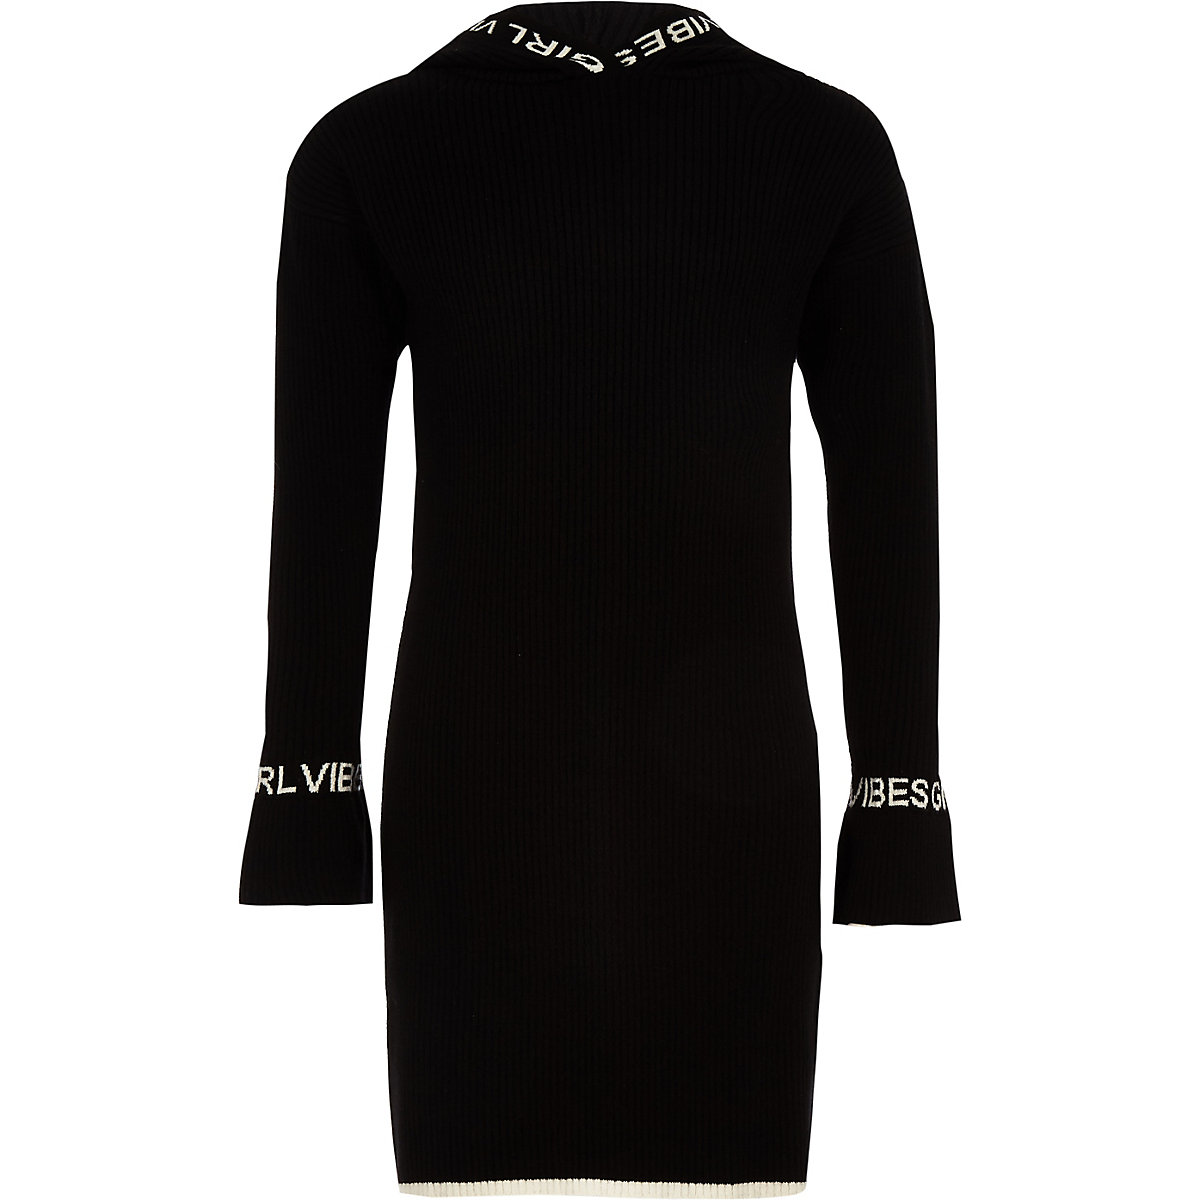 Girls black 'Girls vibe' hooded knit dress